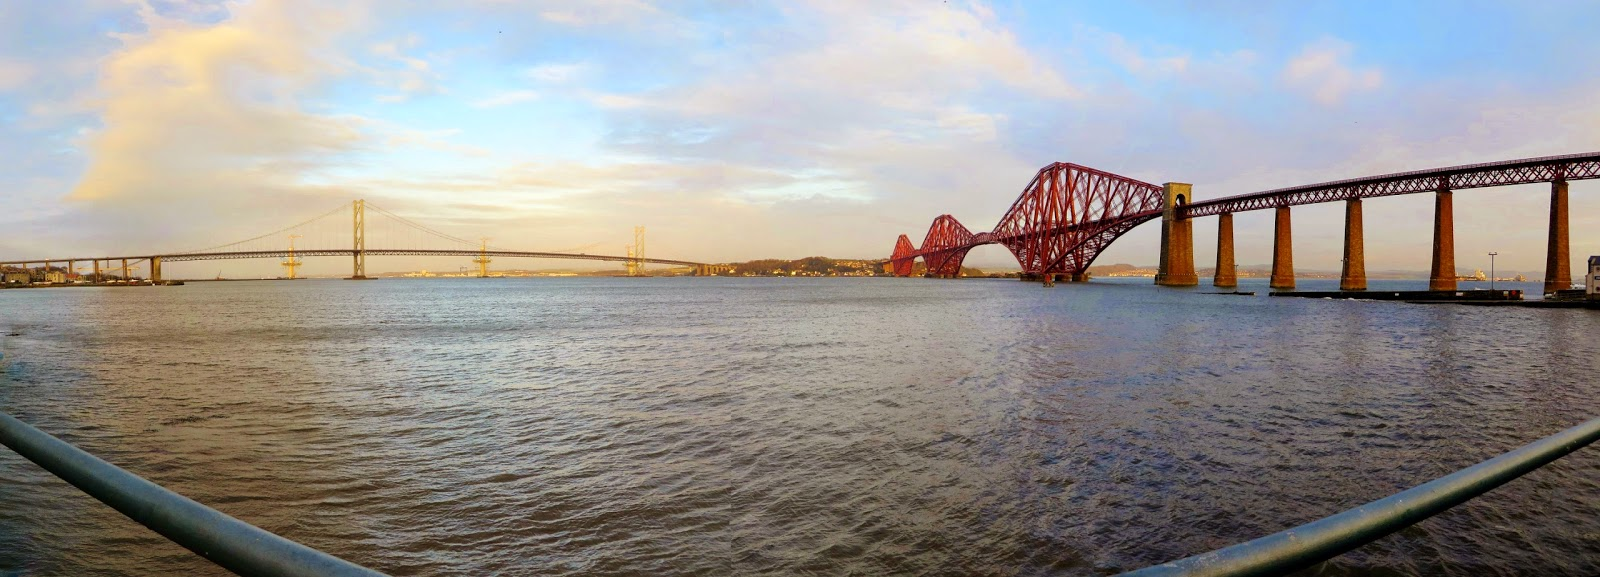 Firth of Forth Bridge, Edinburgh, Scotland, Forth river, Firth of Forth, Three centuries of bridges, Hairy Coo Tour